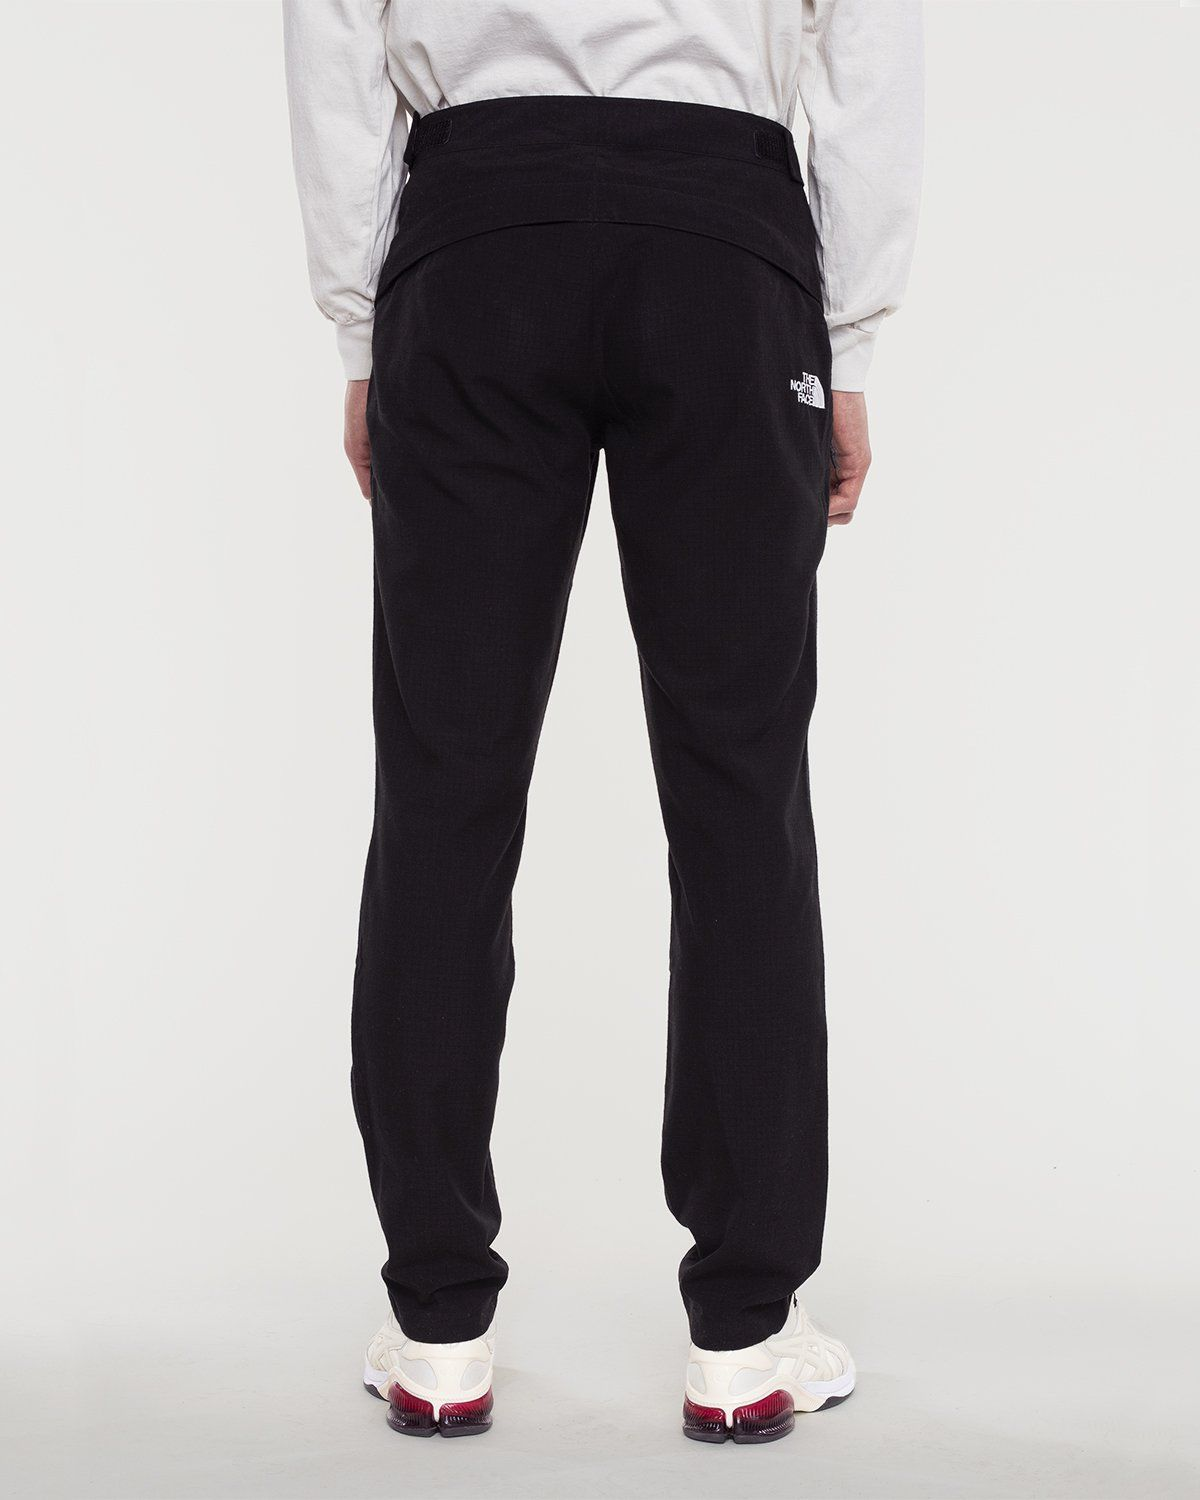 The North Face Black Series — Ripstop Trousers Black - Image 6